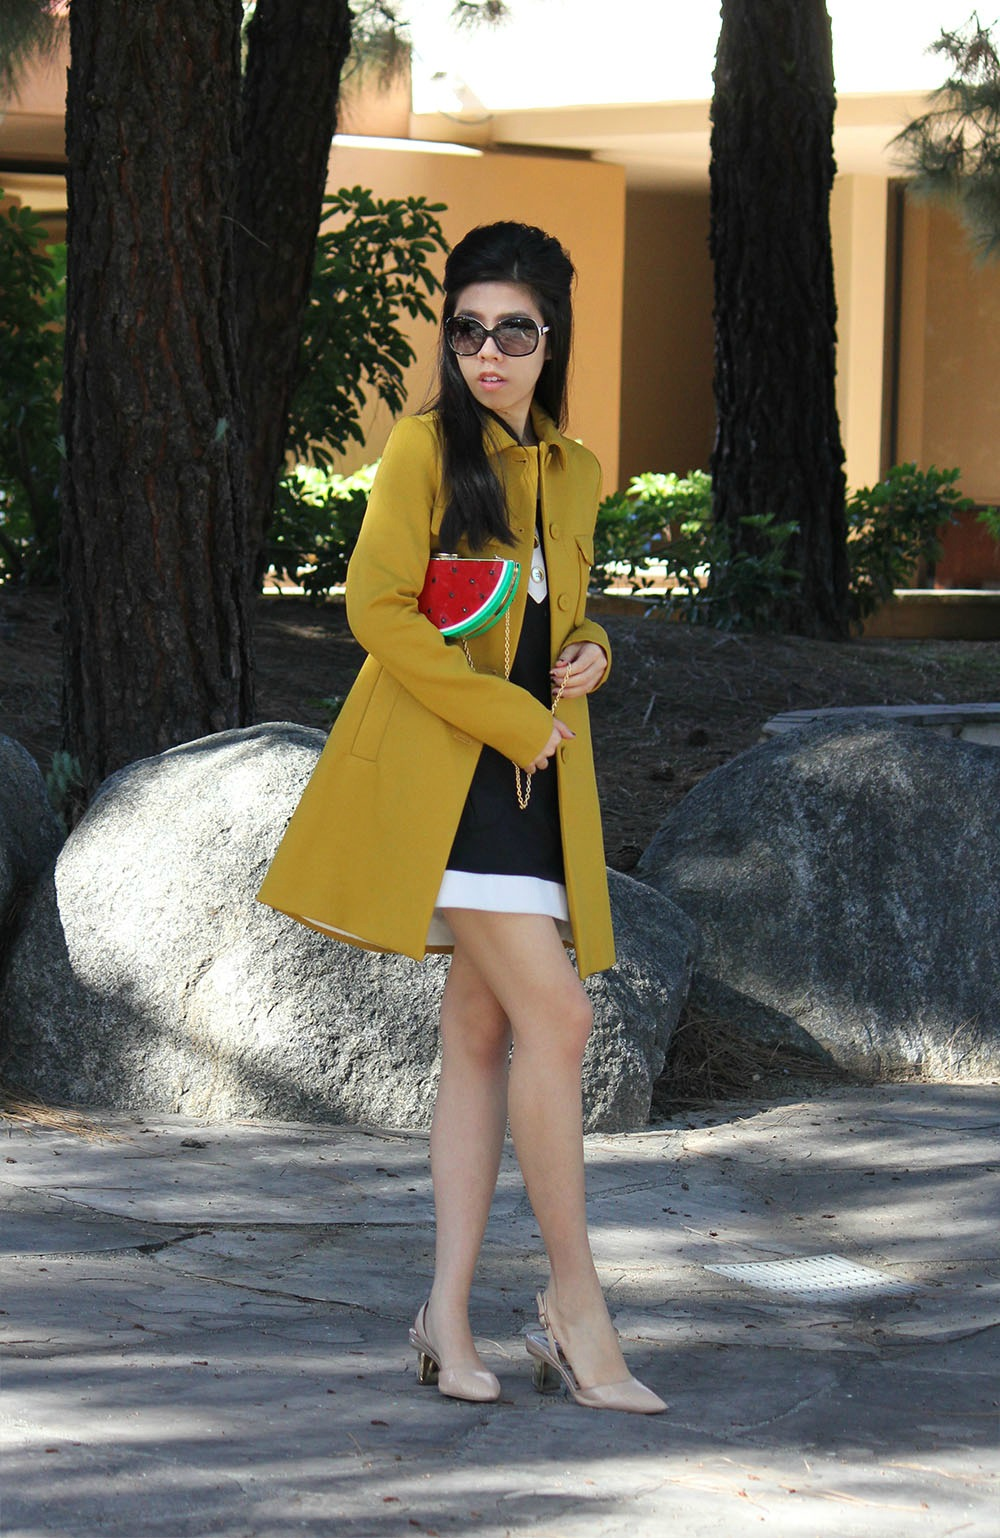 Adrienne Nguyen_Invictus_What to Wear with A Watermelon Bag _ Watermelon Clutch_California Fashion Blogger